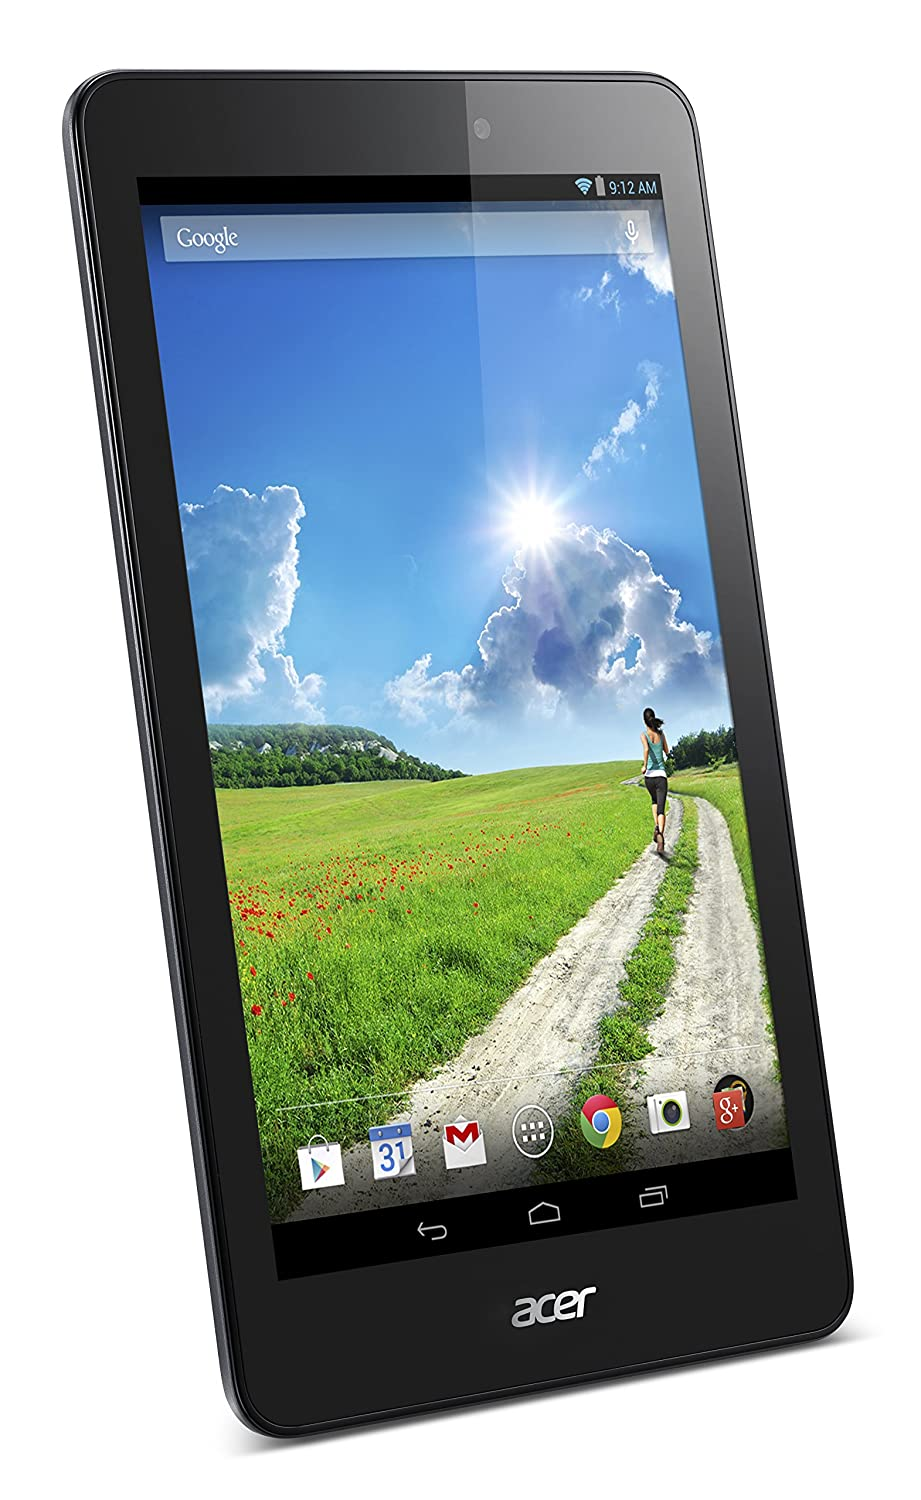 Amazon.com: Acer Iconia One 8 Tablet, 8-inch HD, Intel Atom Z3735G, 1GB  DDR3L, 16GB Storage, Android KitKat, B1-810-11QT: Computers & Accessories